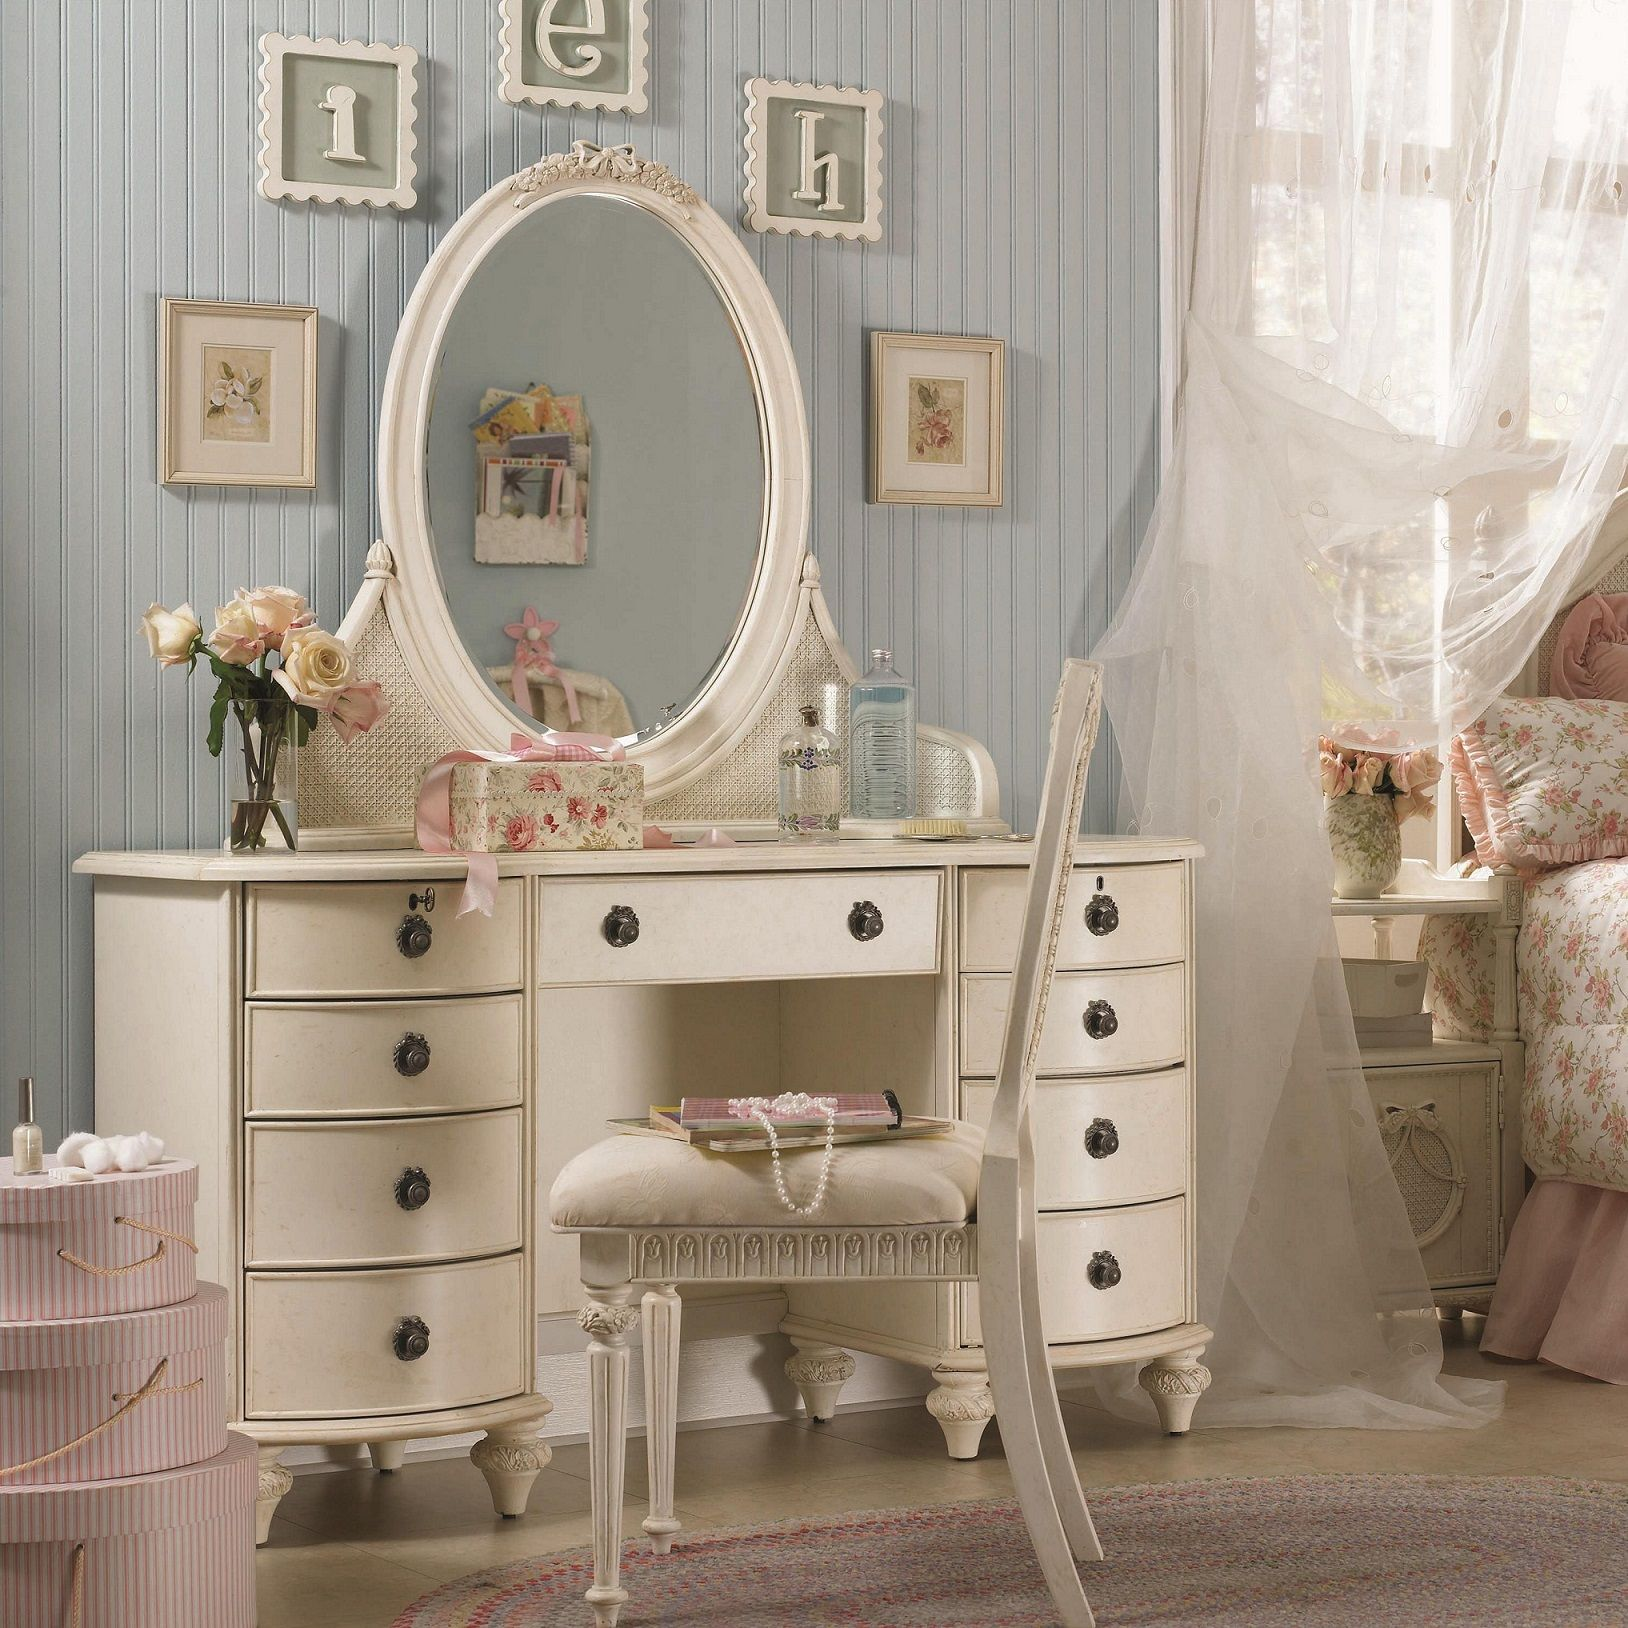 Vintage Makeup Vanity Table Ideas